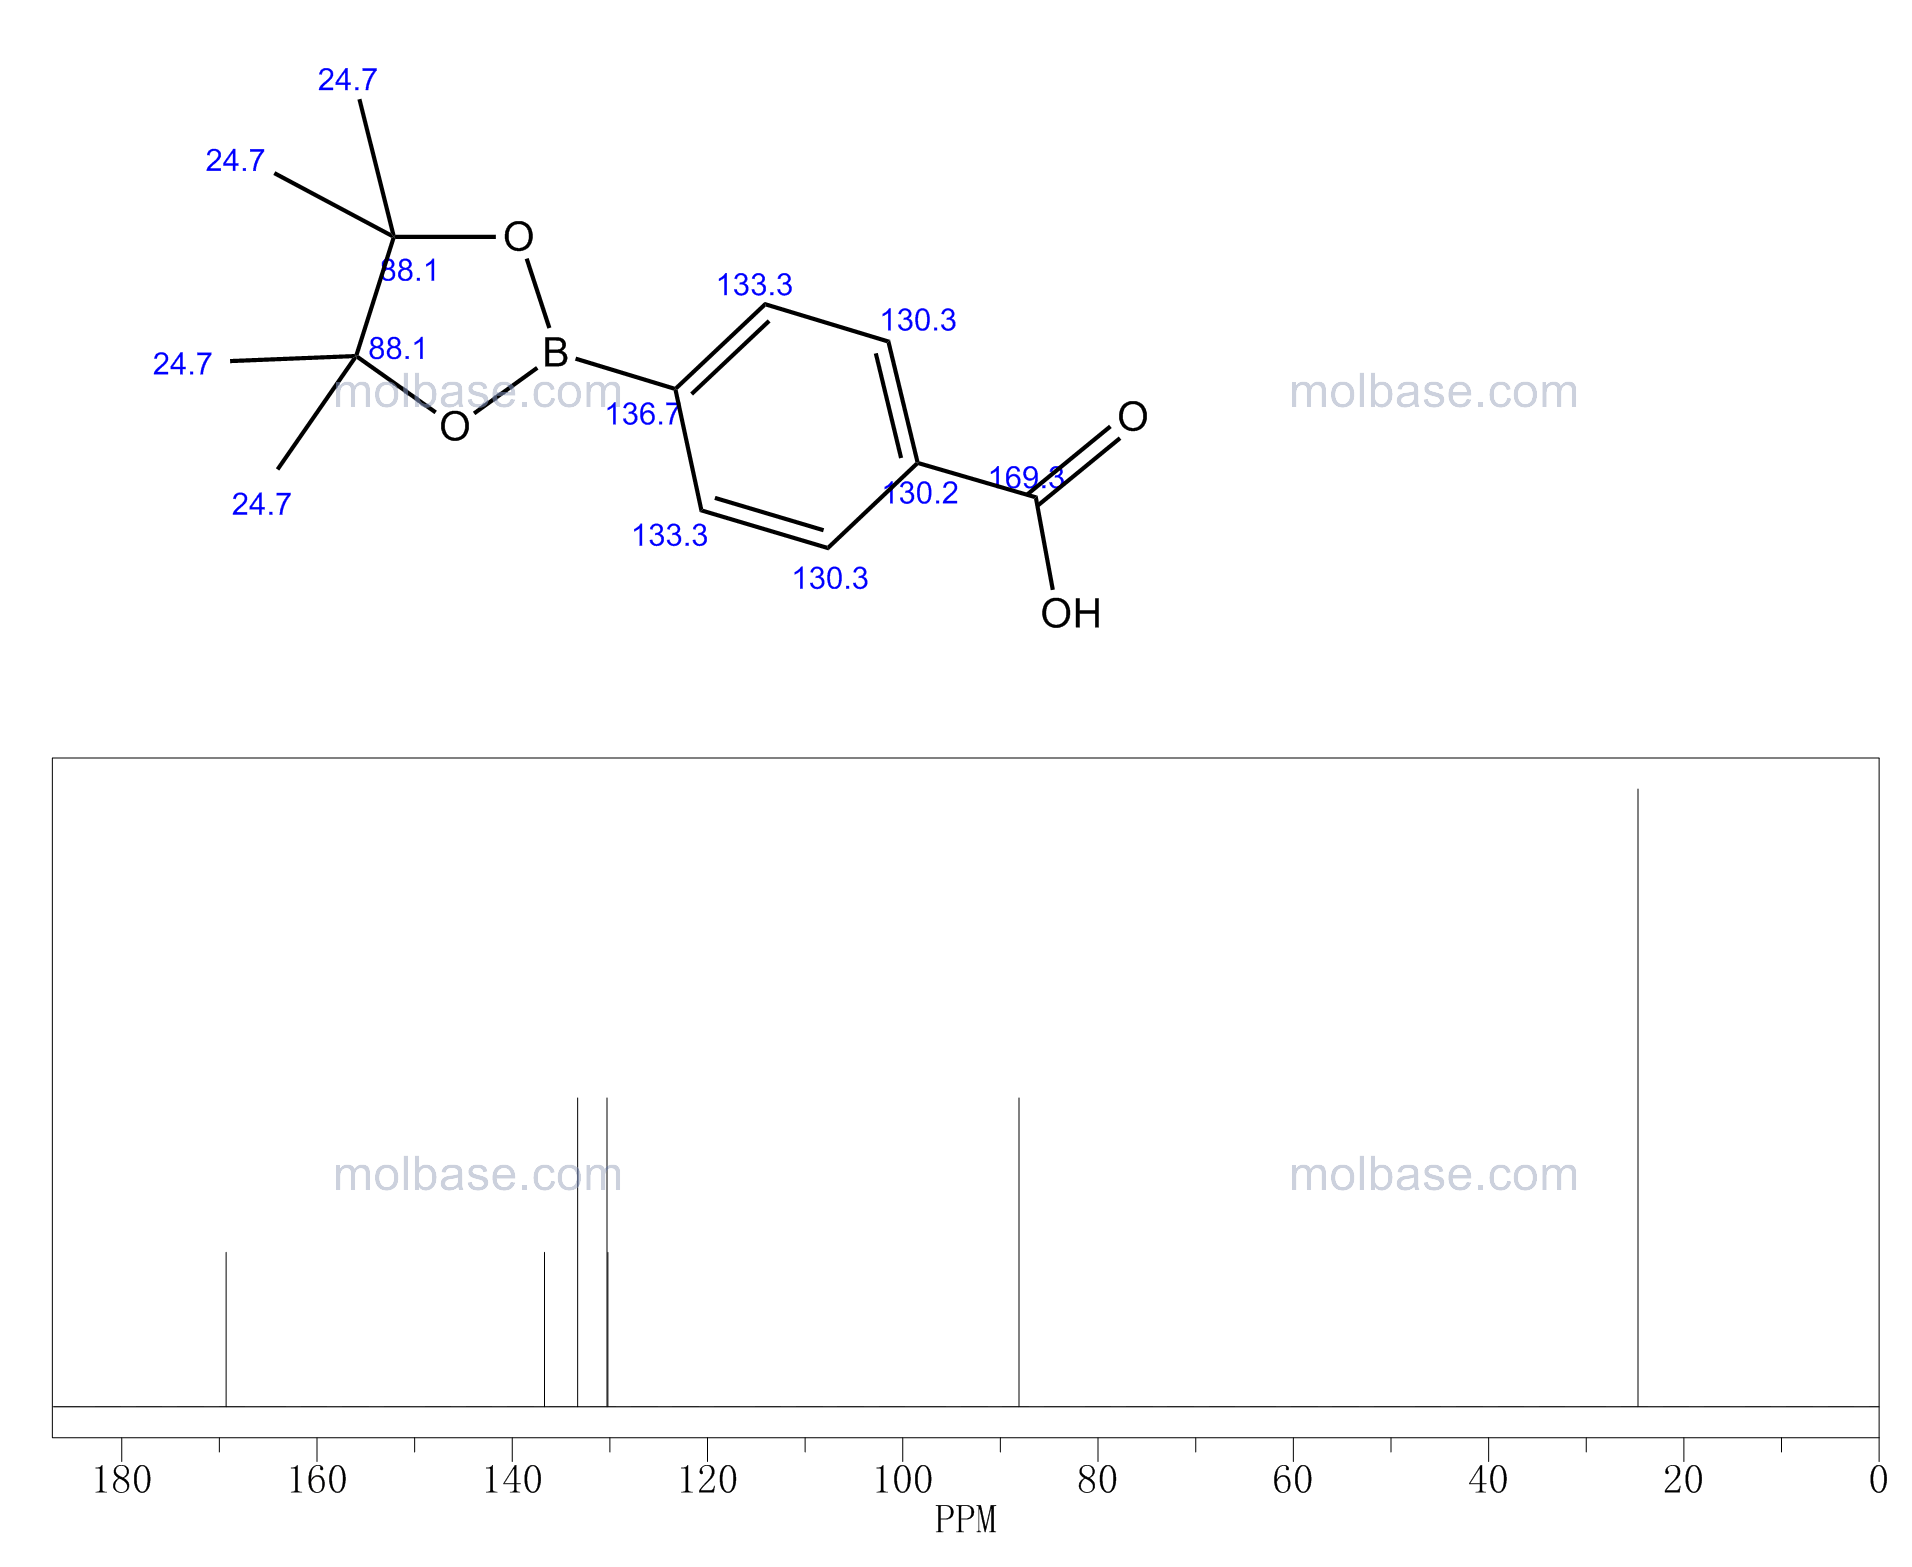 4-(4,4,5,5-tetramethyl-1,3,2-dioxaborolan-2-yl)benzoic acid NMR spectra analysis, Chemical CAS NO. 180516-87-4 NMR spectral analysis, 4-(4,4,5,5-tetramethyl-1,3,2-dioxaborolan-2-yl)benzoic acid C-NMR spectrum